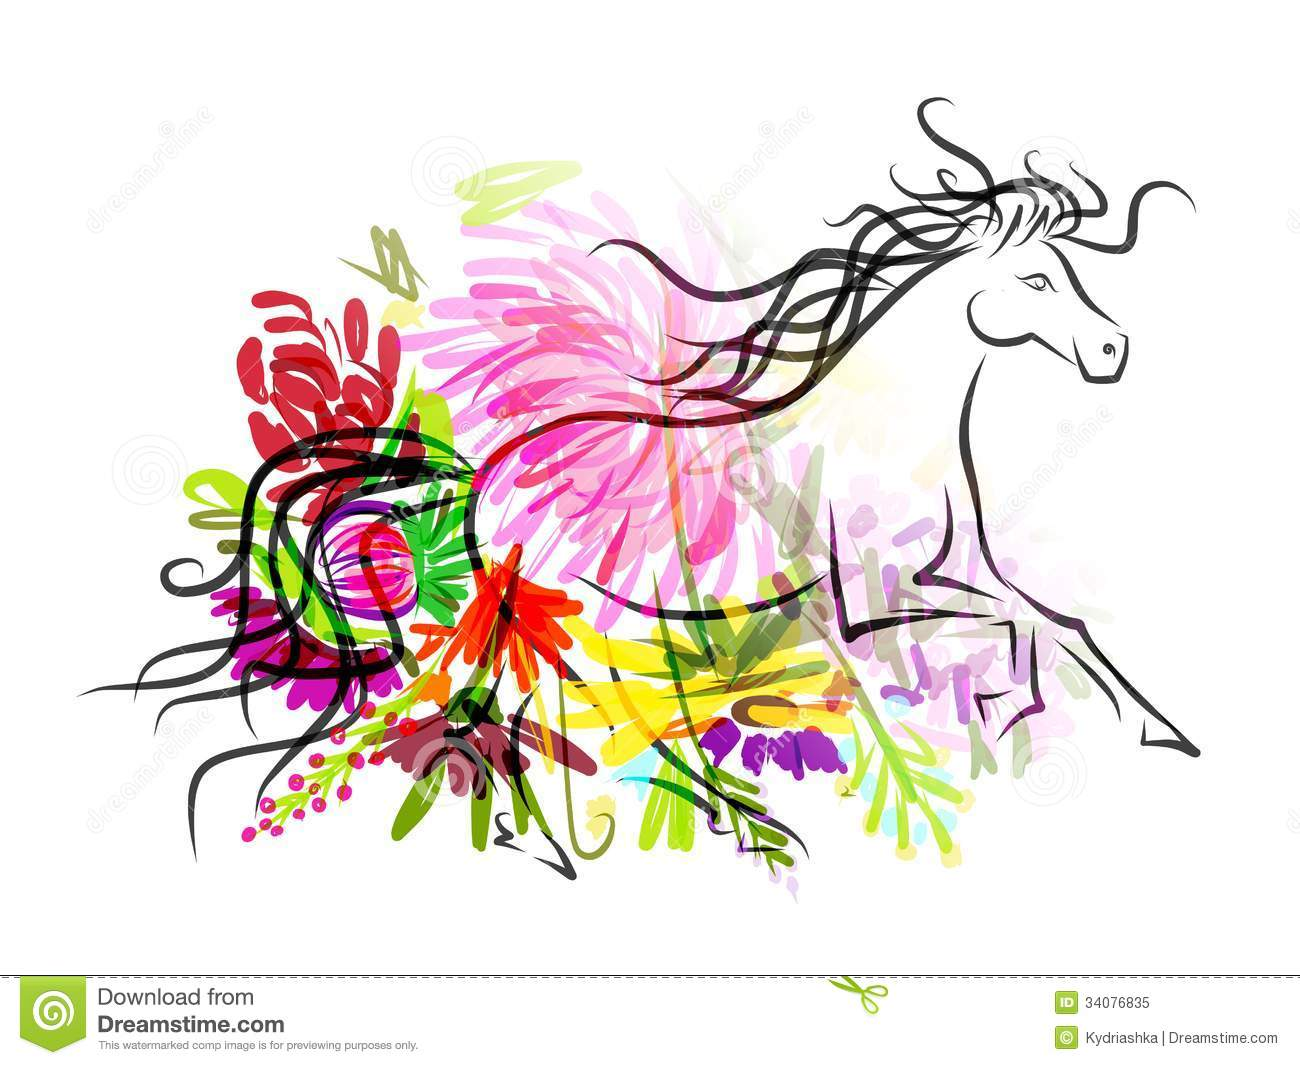 Horse Head Sketch Floral Decoration Your Stock Illustrations 20 Horse Head Sketch Floral Decoration Your Stock Illustrations Vectors Clipart Dreamstime